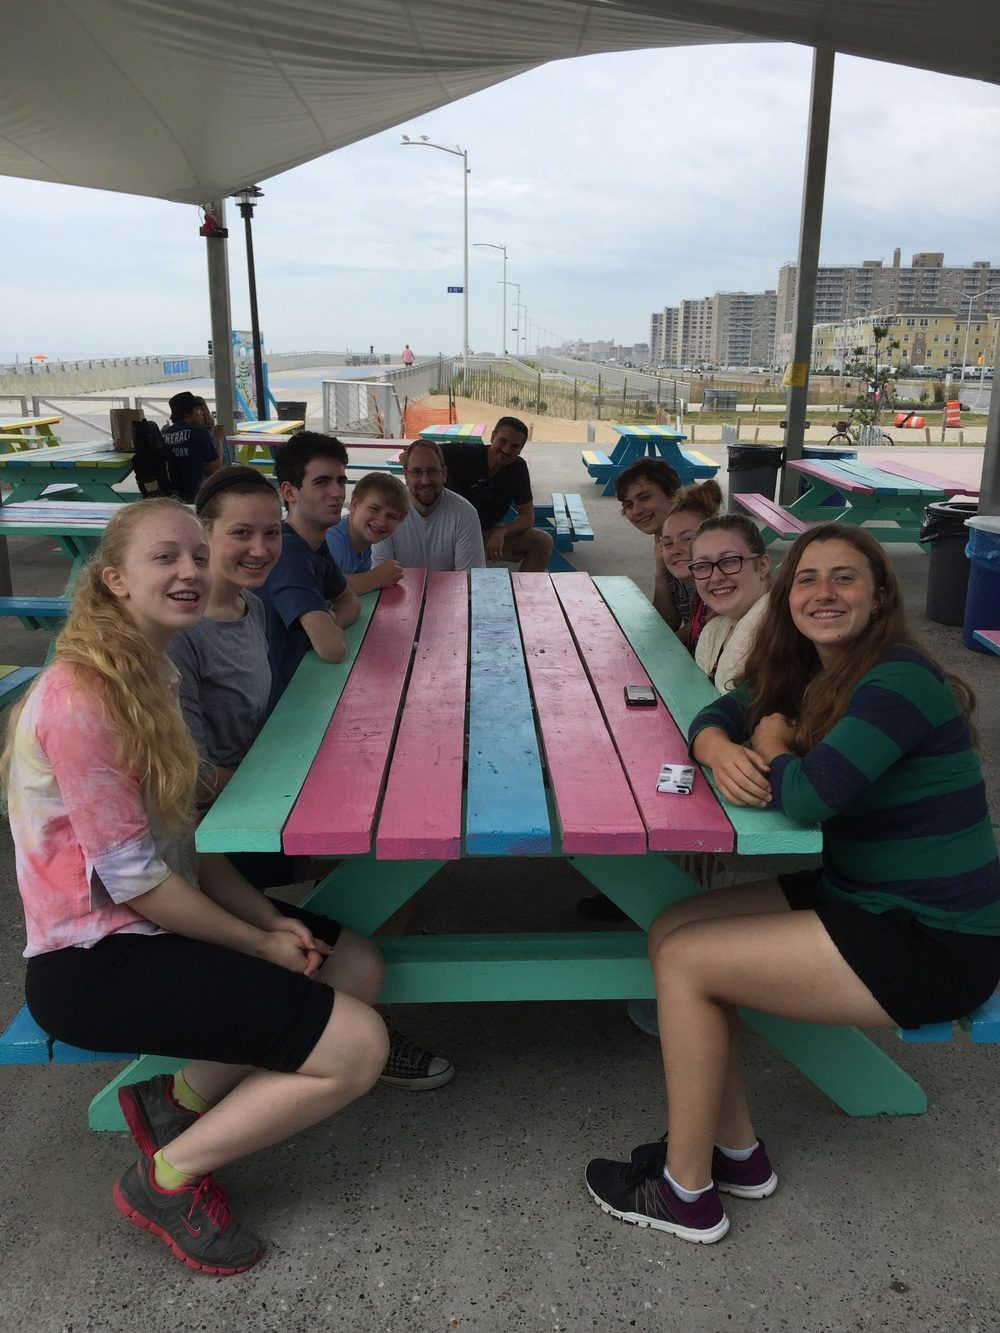 Lunch on the boardwalk